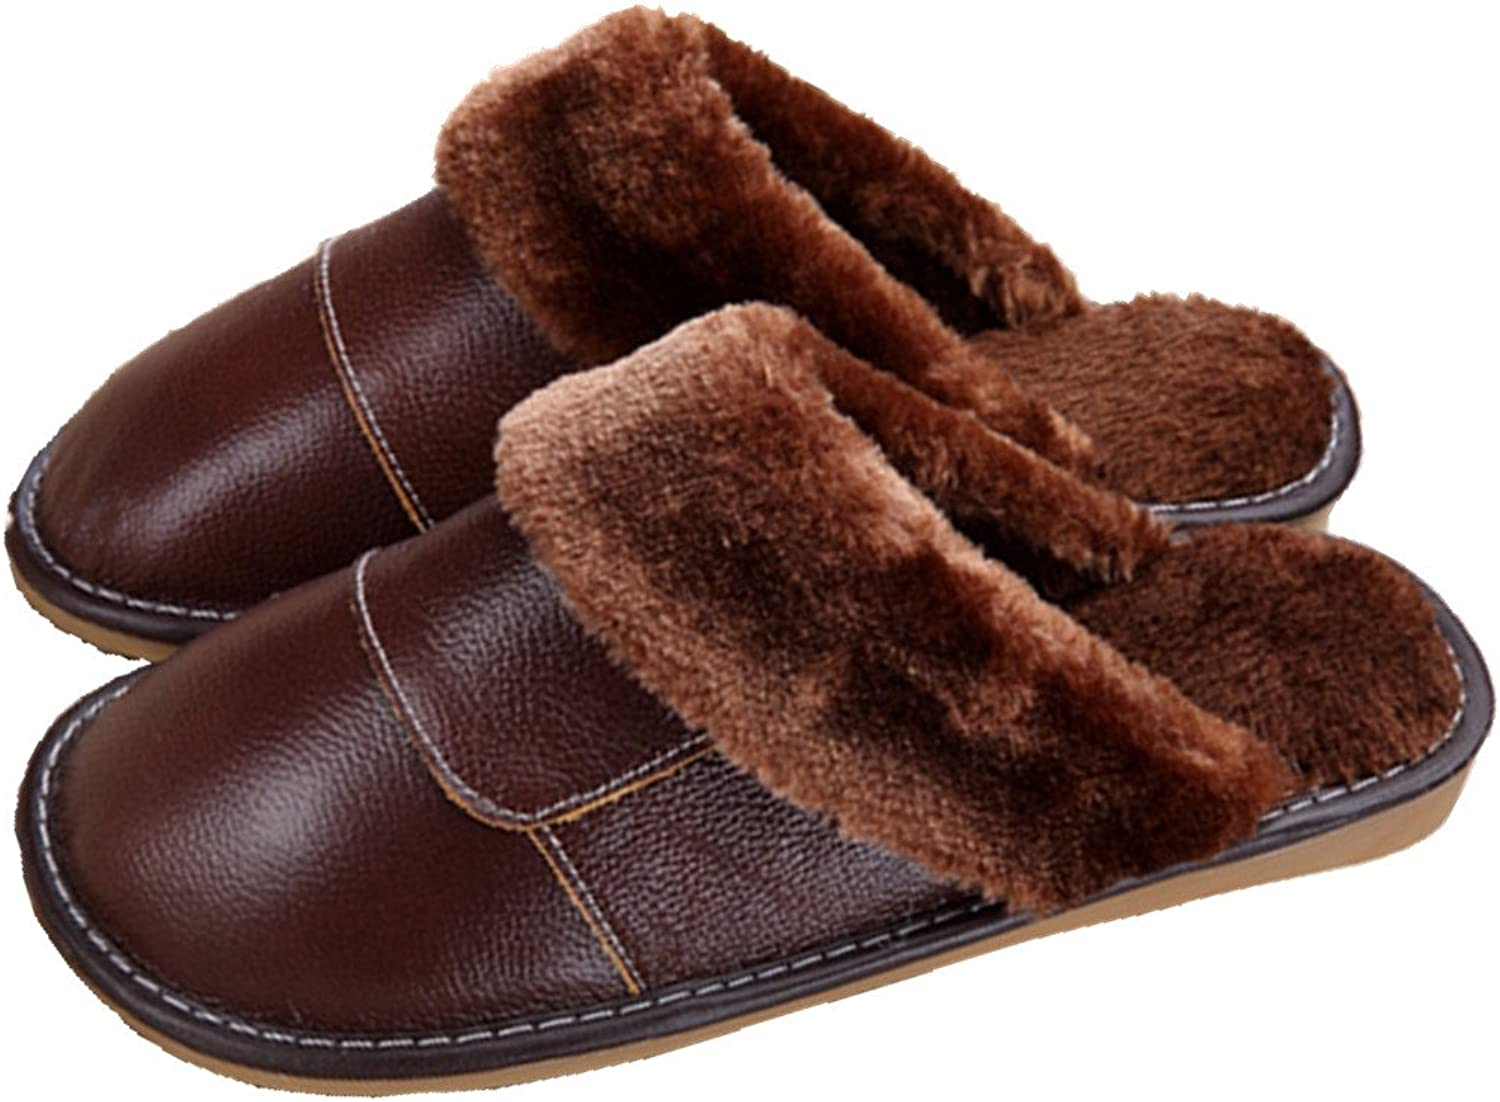 SAMSAY Unisex Genuine Leather House Slippers Warm Soft Plush Fleece Lined Sandals shoes